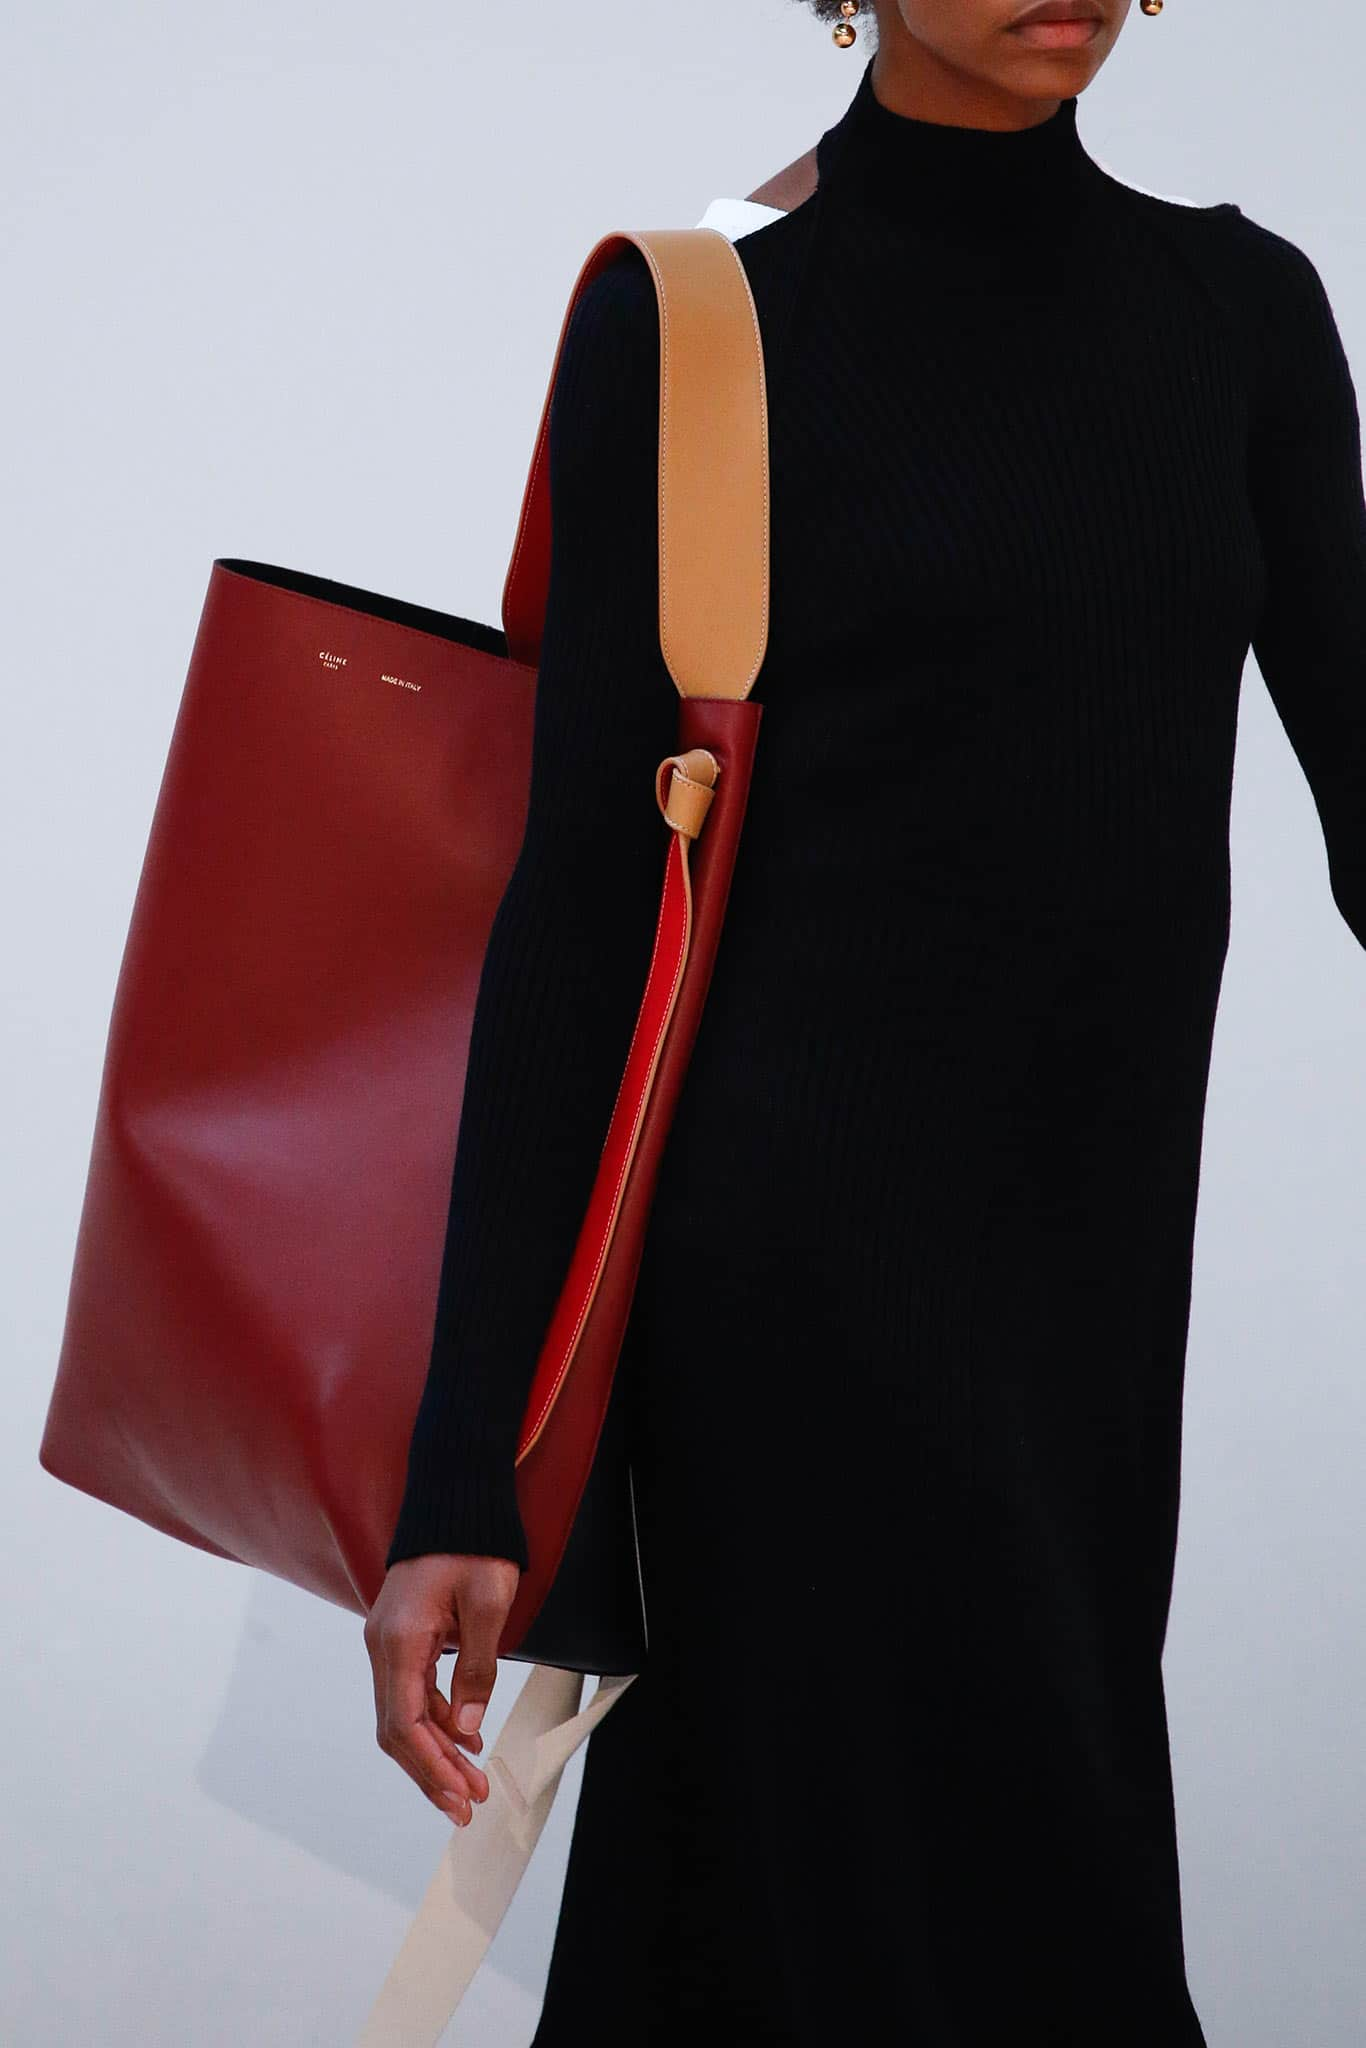 Celine Fall/Winter 2015 Runway Bag Collection Featuring Large Tote ...